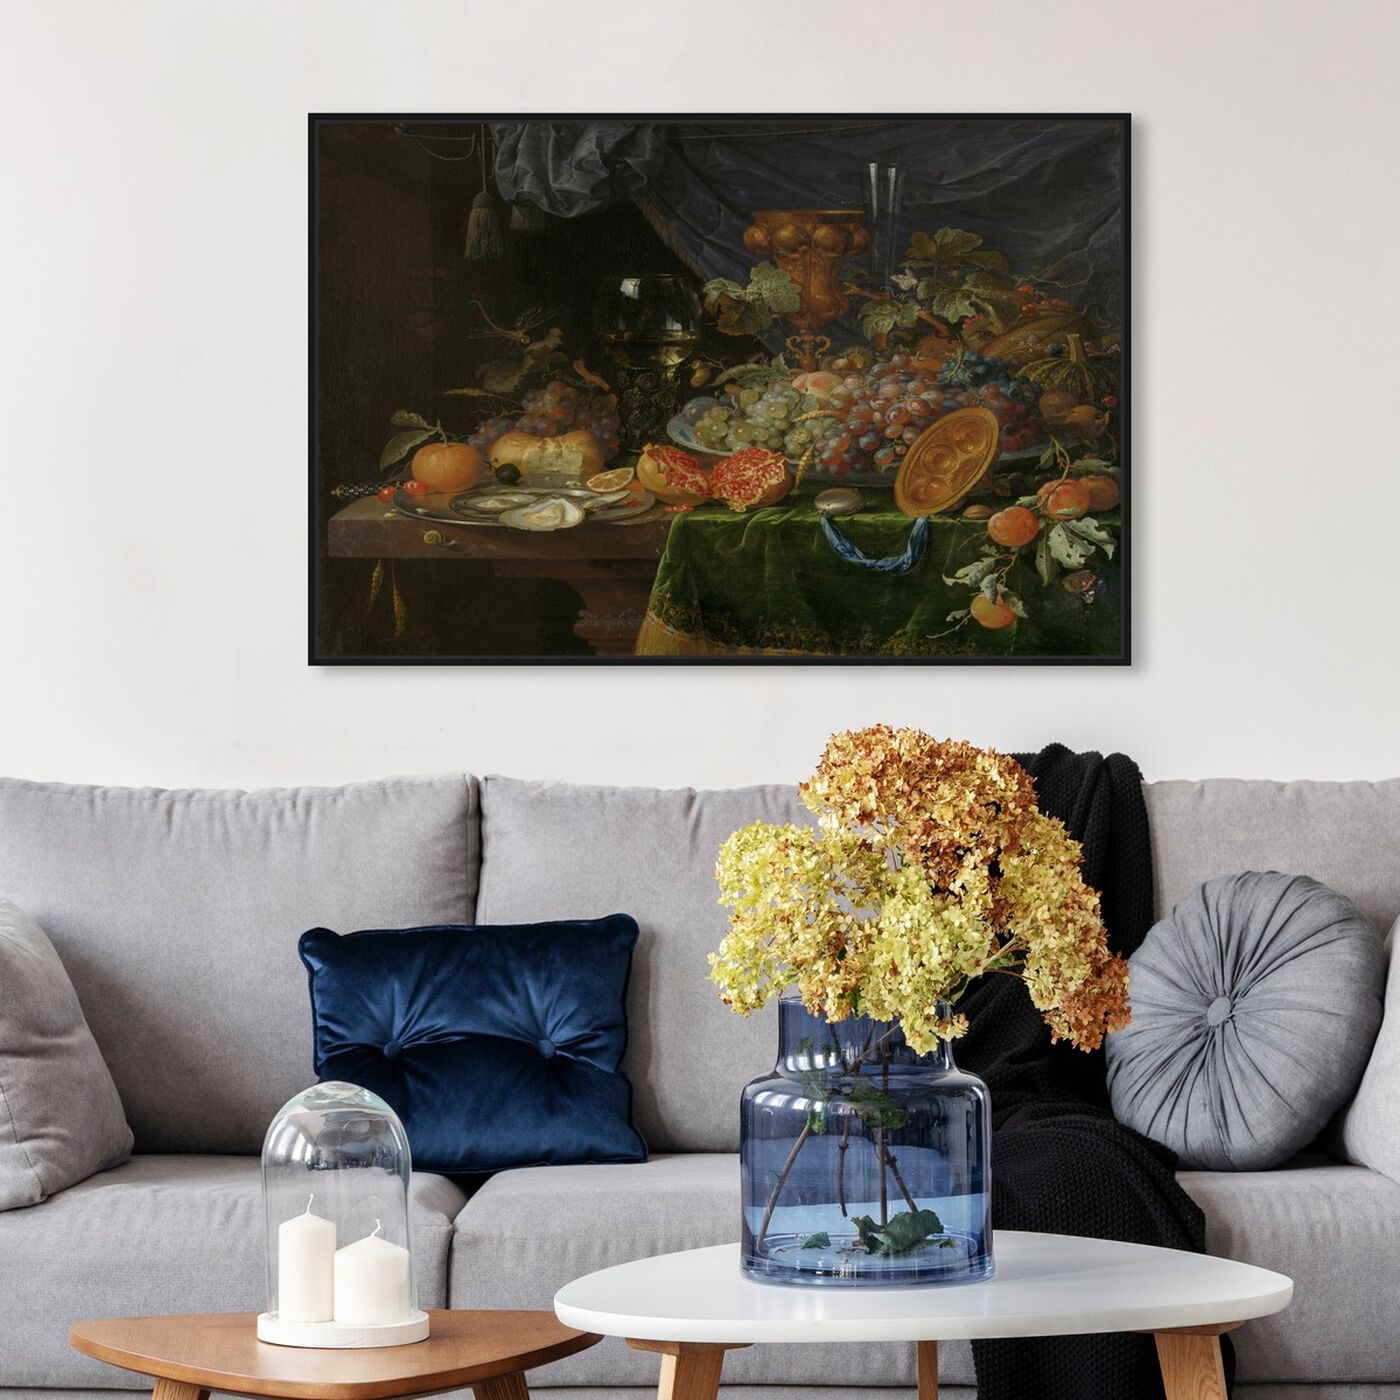 Hanging view of Fruit Arrangement - The Art Cabinet featuring classic and figurative and realism art.